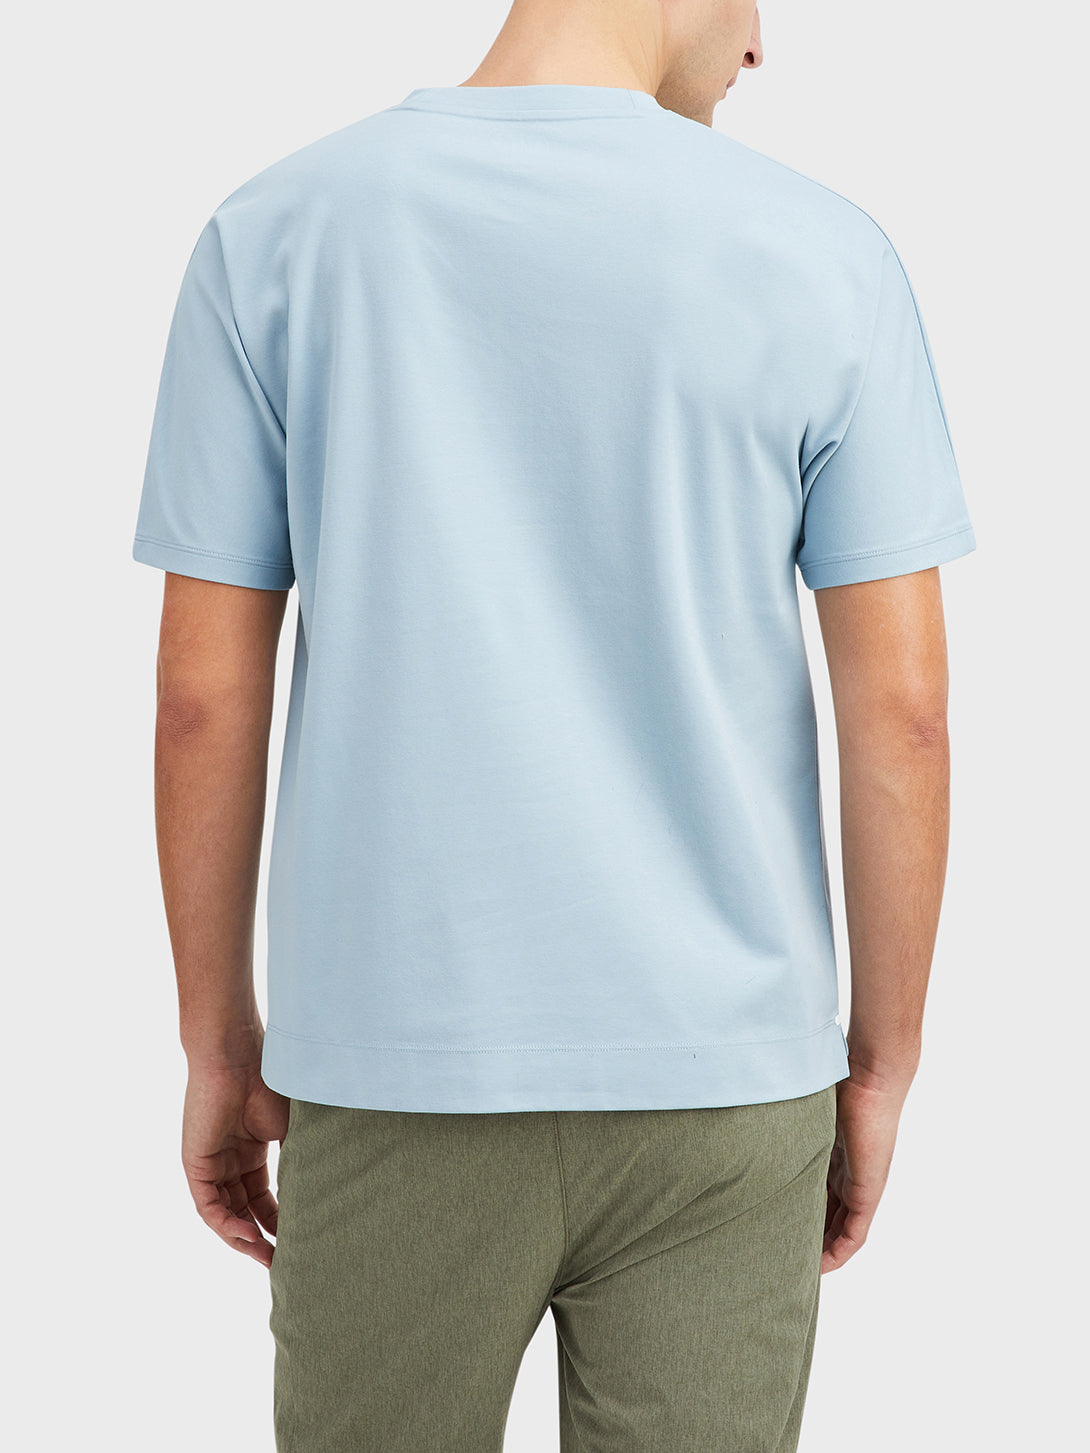 Blue Dreams Reno Crew Neck Tee Men's cotton t-shirts ONS Clothing